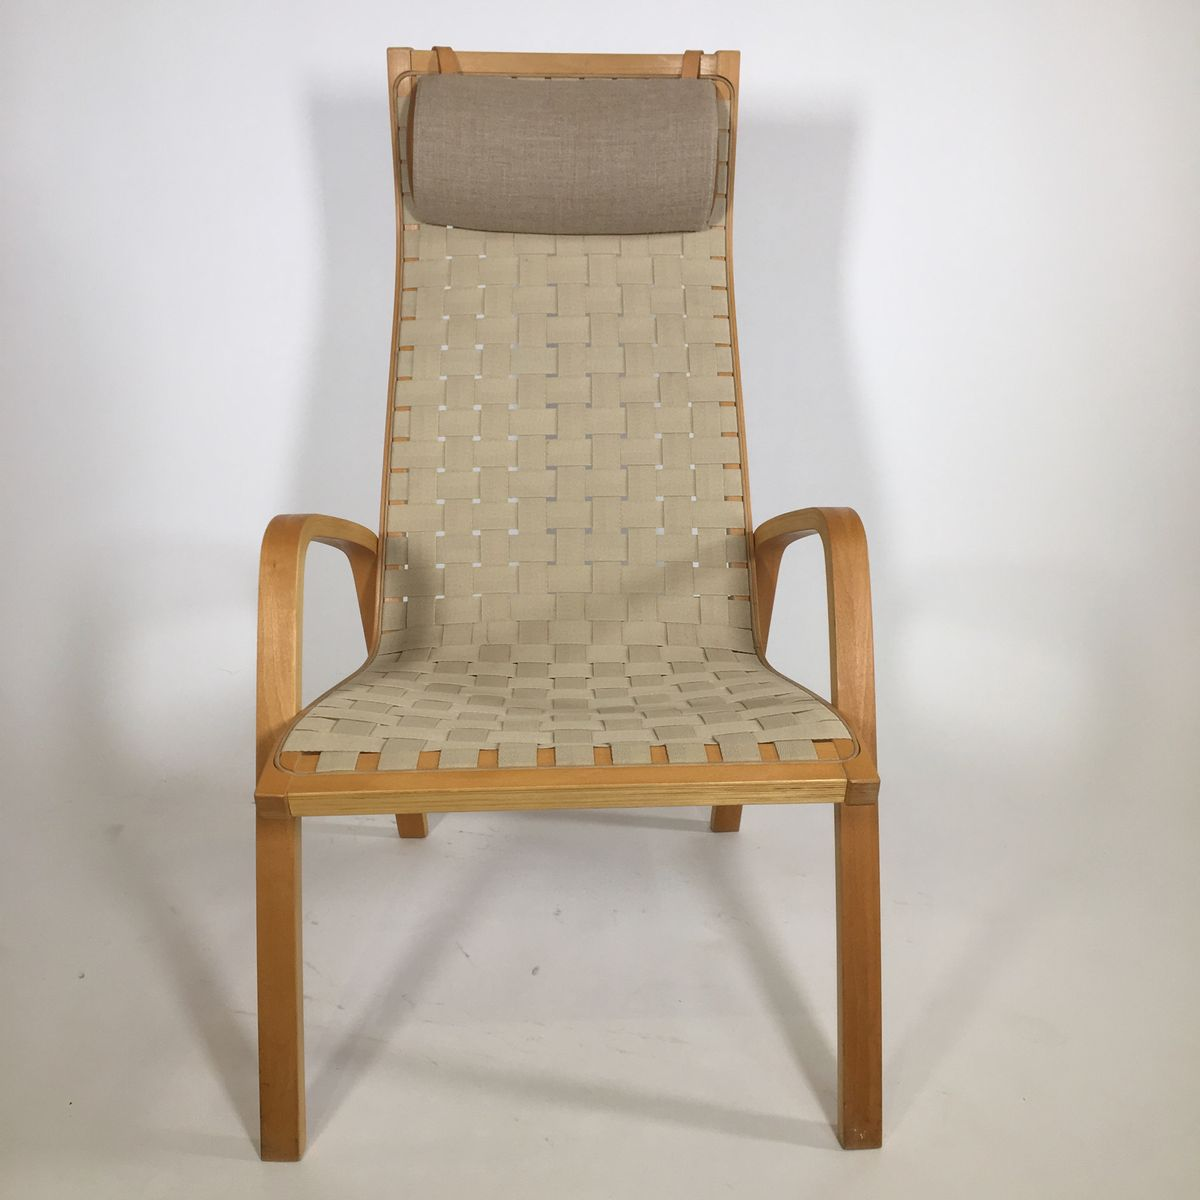 Scandinavian chaise longue 1970s for sale at pamono for Chaise longue for sale ireland